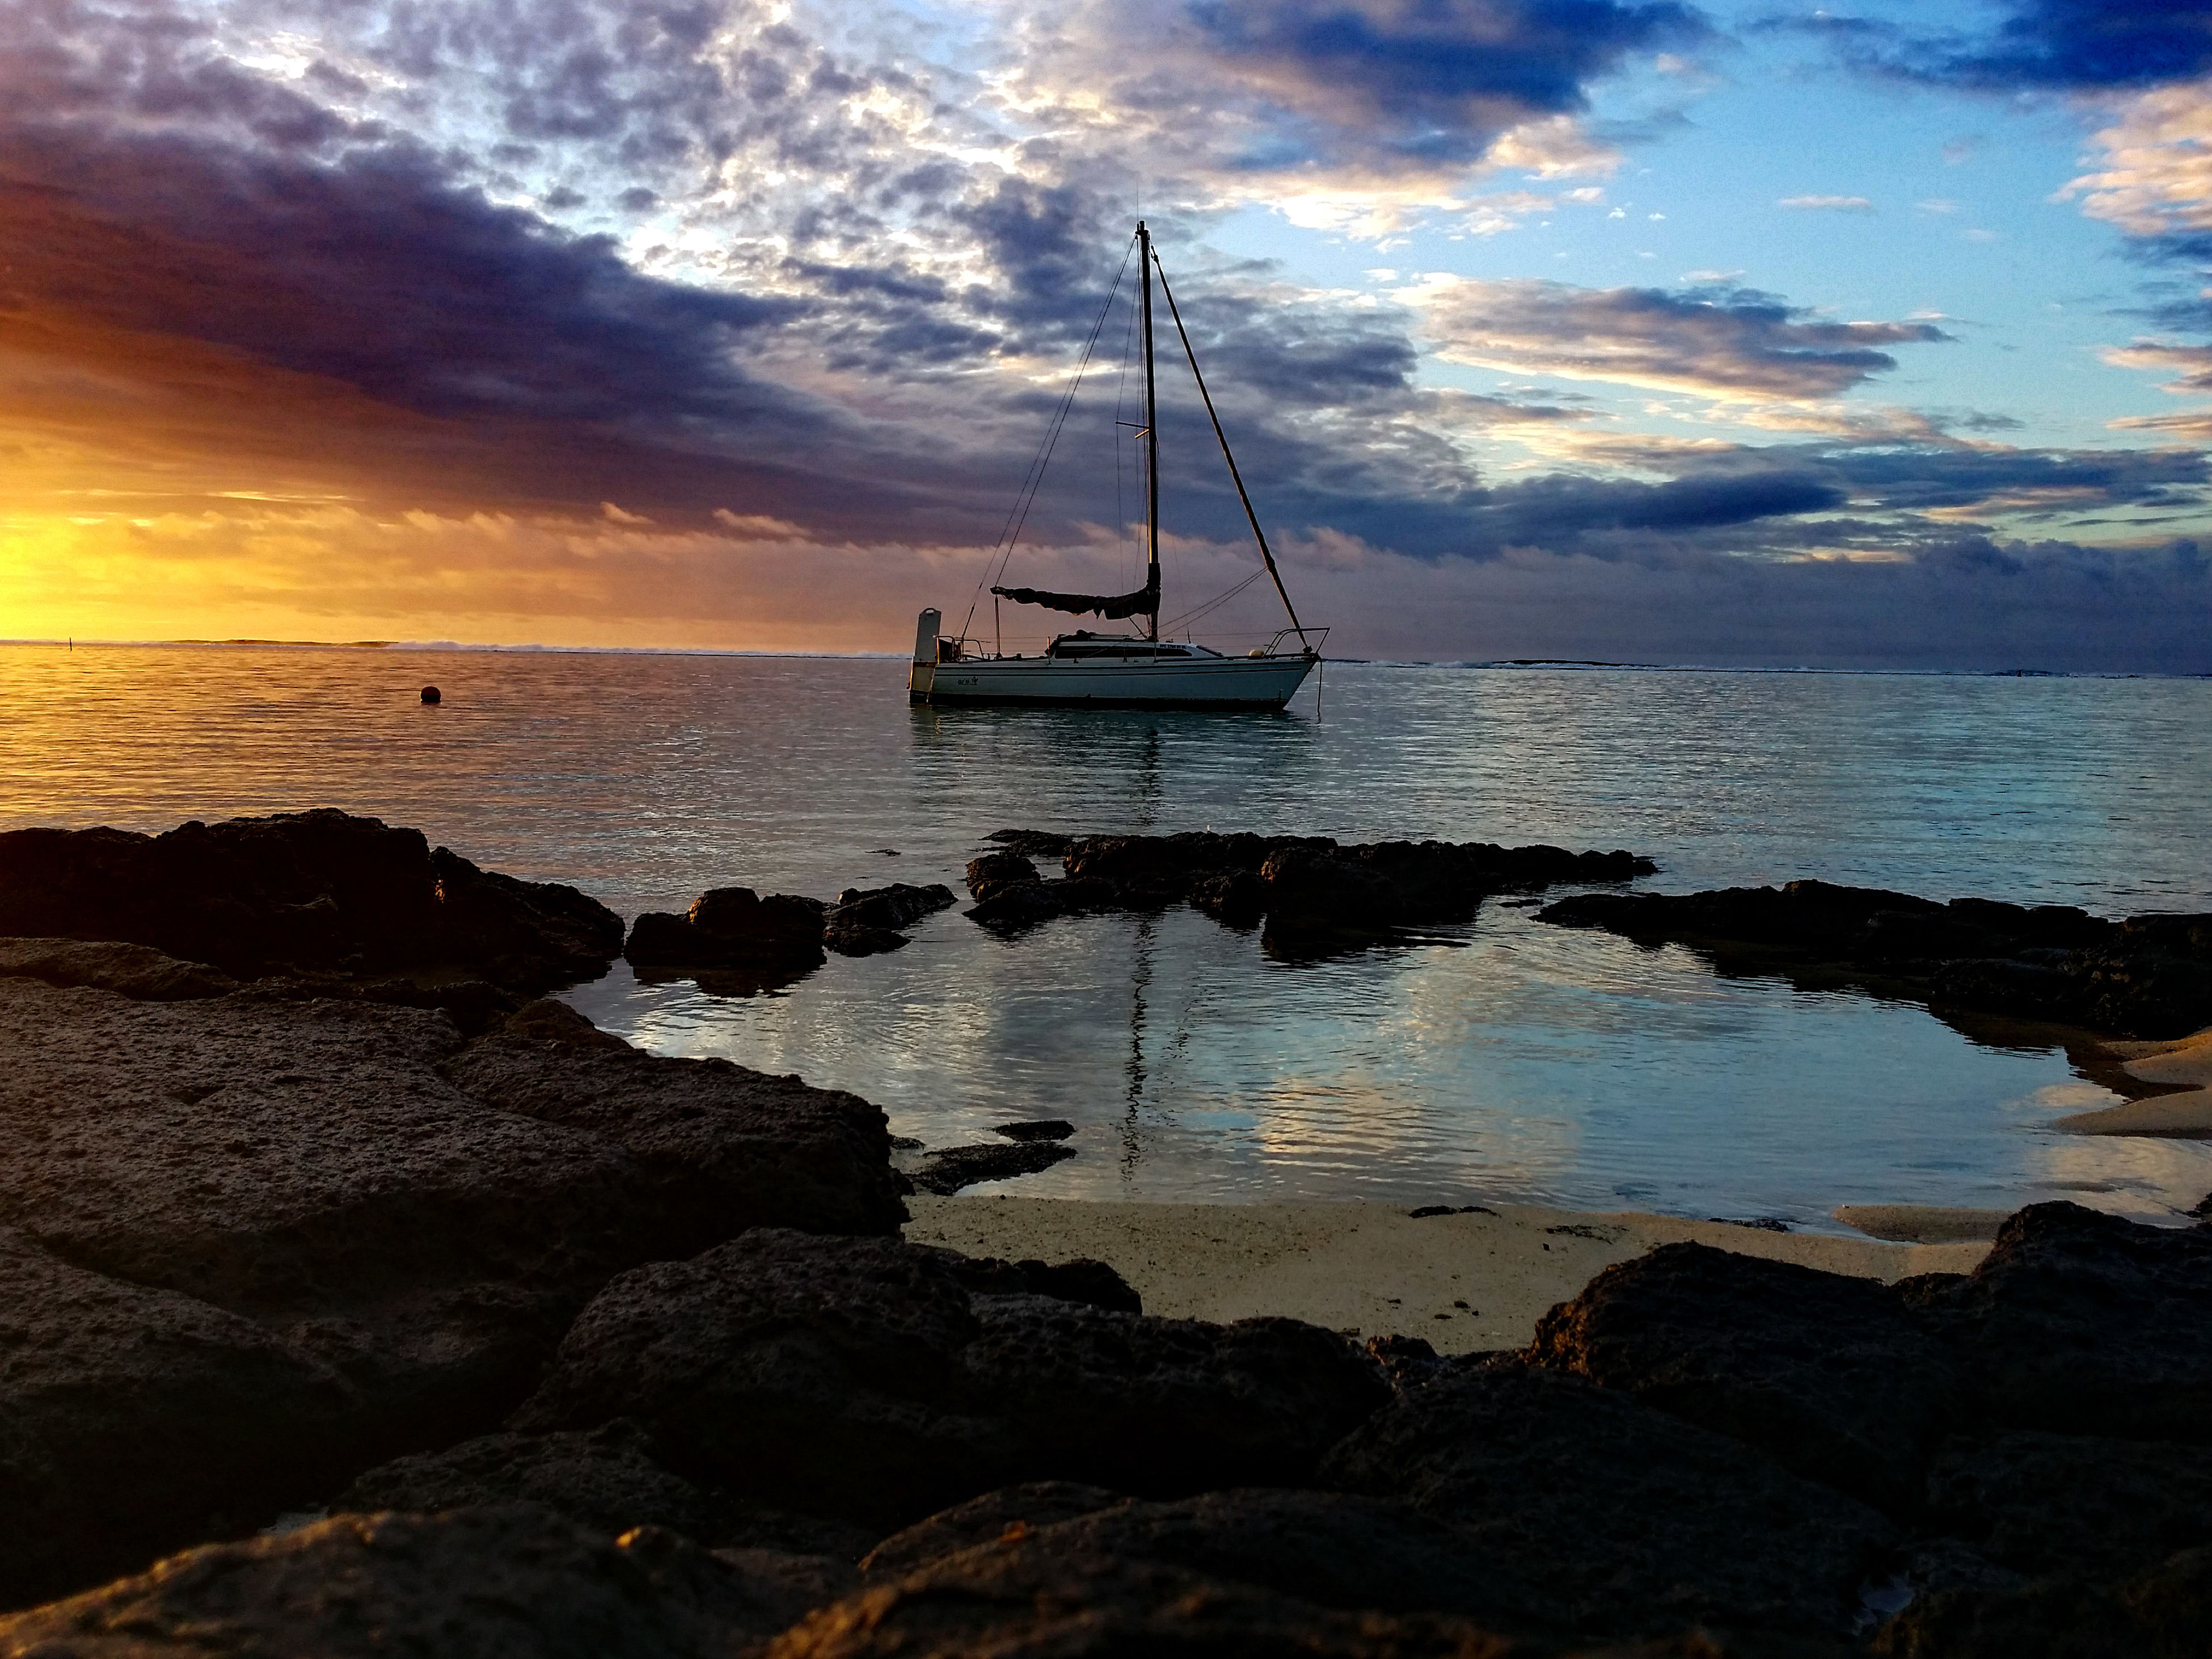 sea, water, nautical vessel, transportation, sky, boat, mode of transport, horizon over water, sunset, scenics, tranquility, cloud - sky, beauty in nature, tranquil scene, moored, nature, silhouette, cloud, mast, idyllic